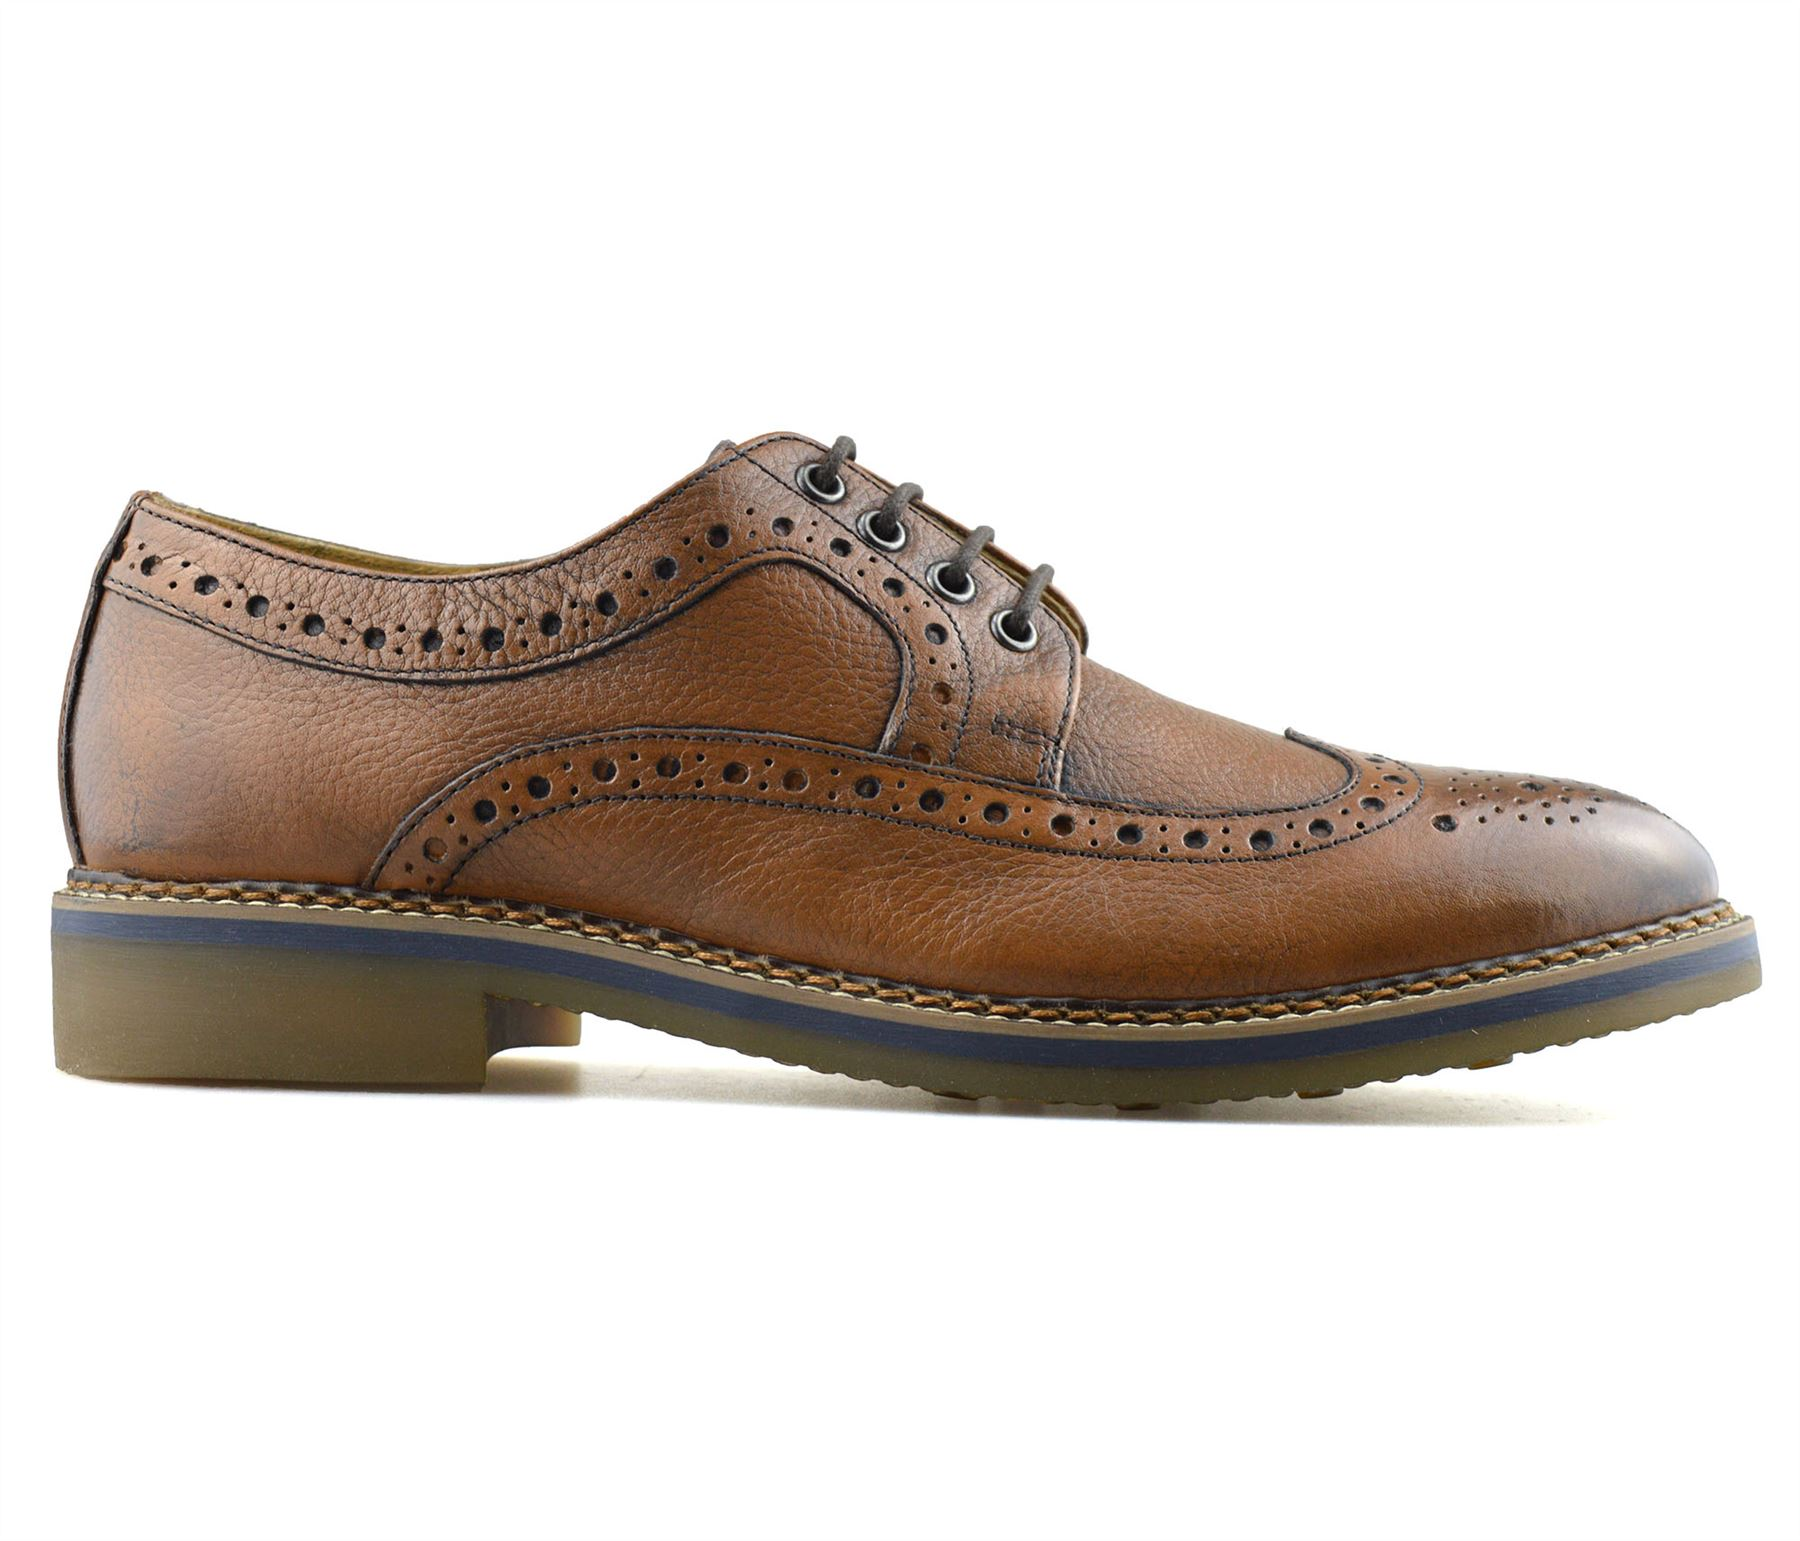 Mens-New-Ikon-Leather-Casual-Smart-Lace-Up-Oxford-Brogues-Work-Office-Shoes-Size thumbnail 14